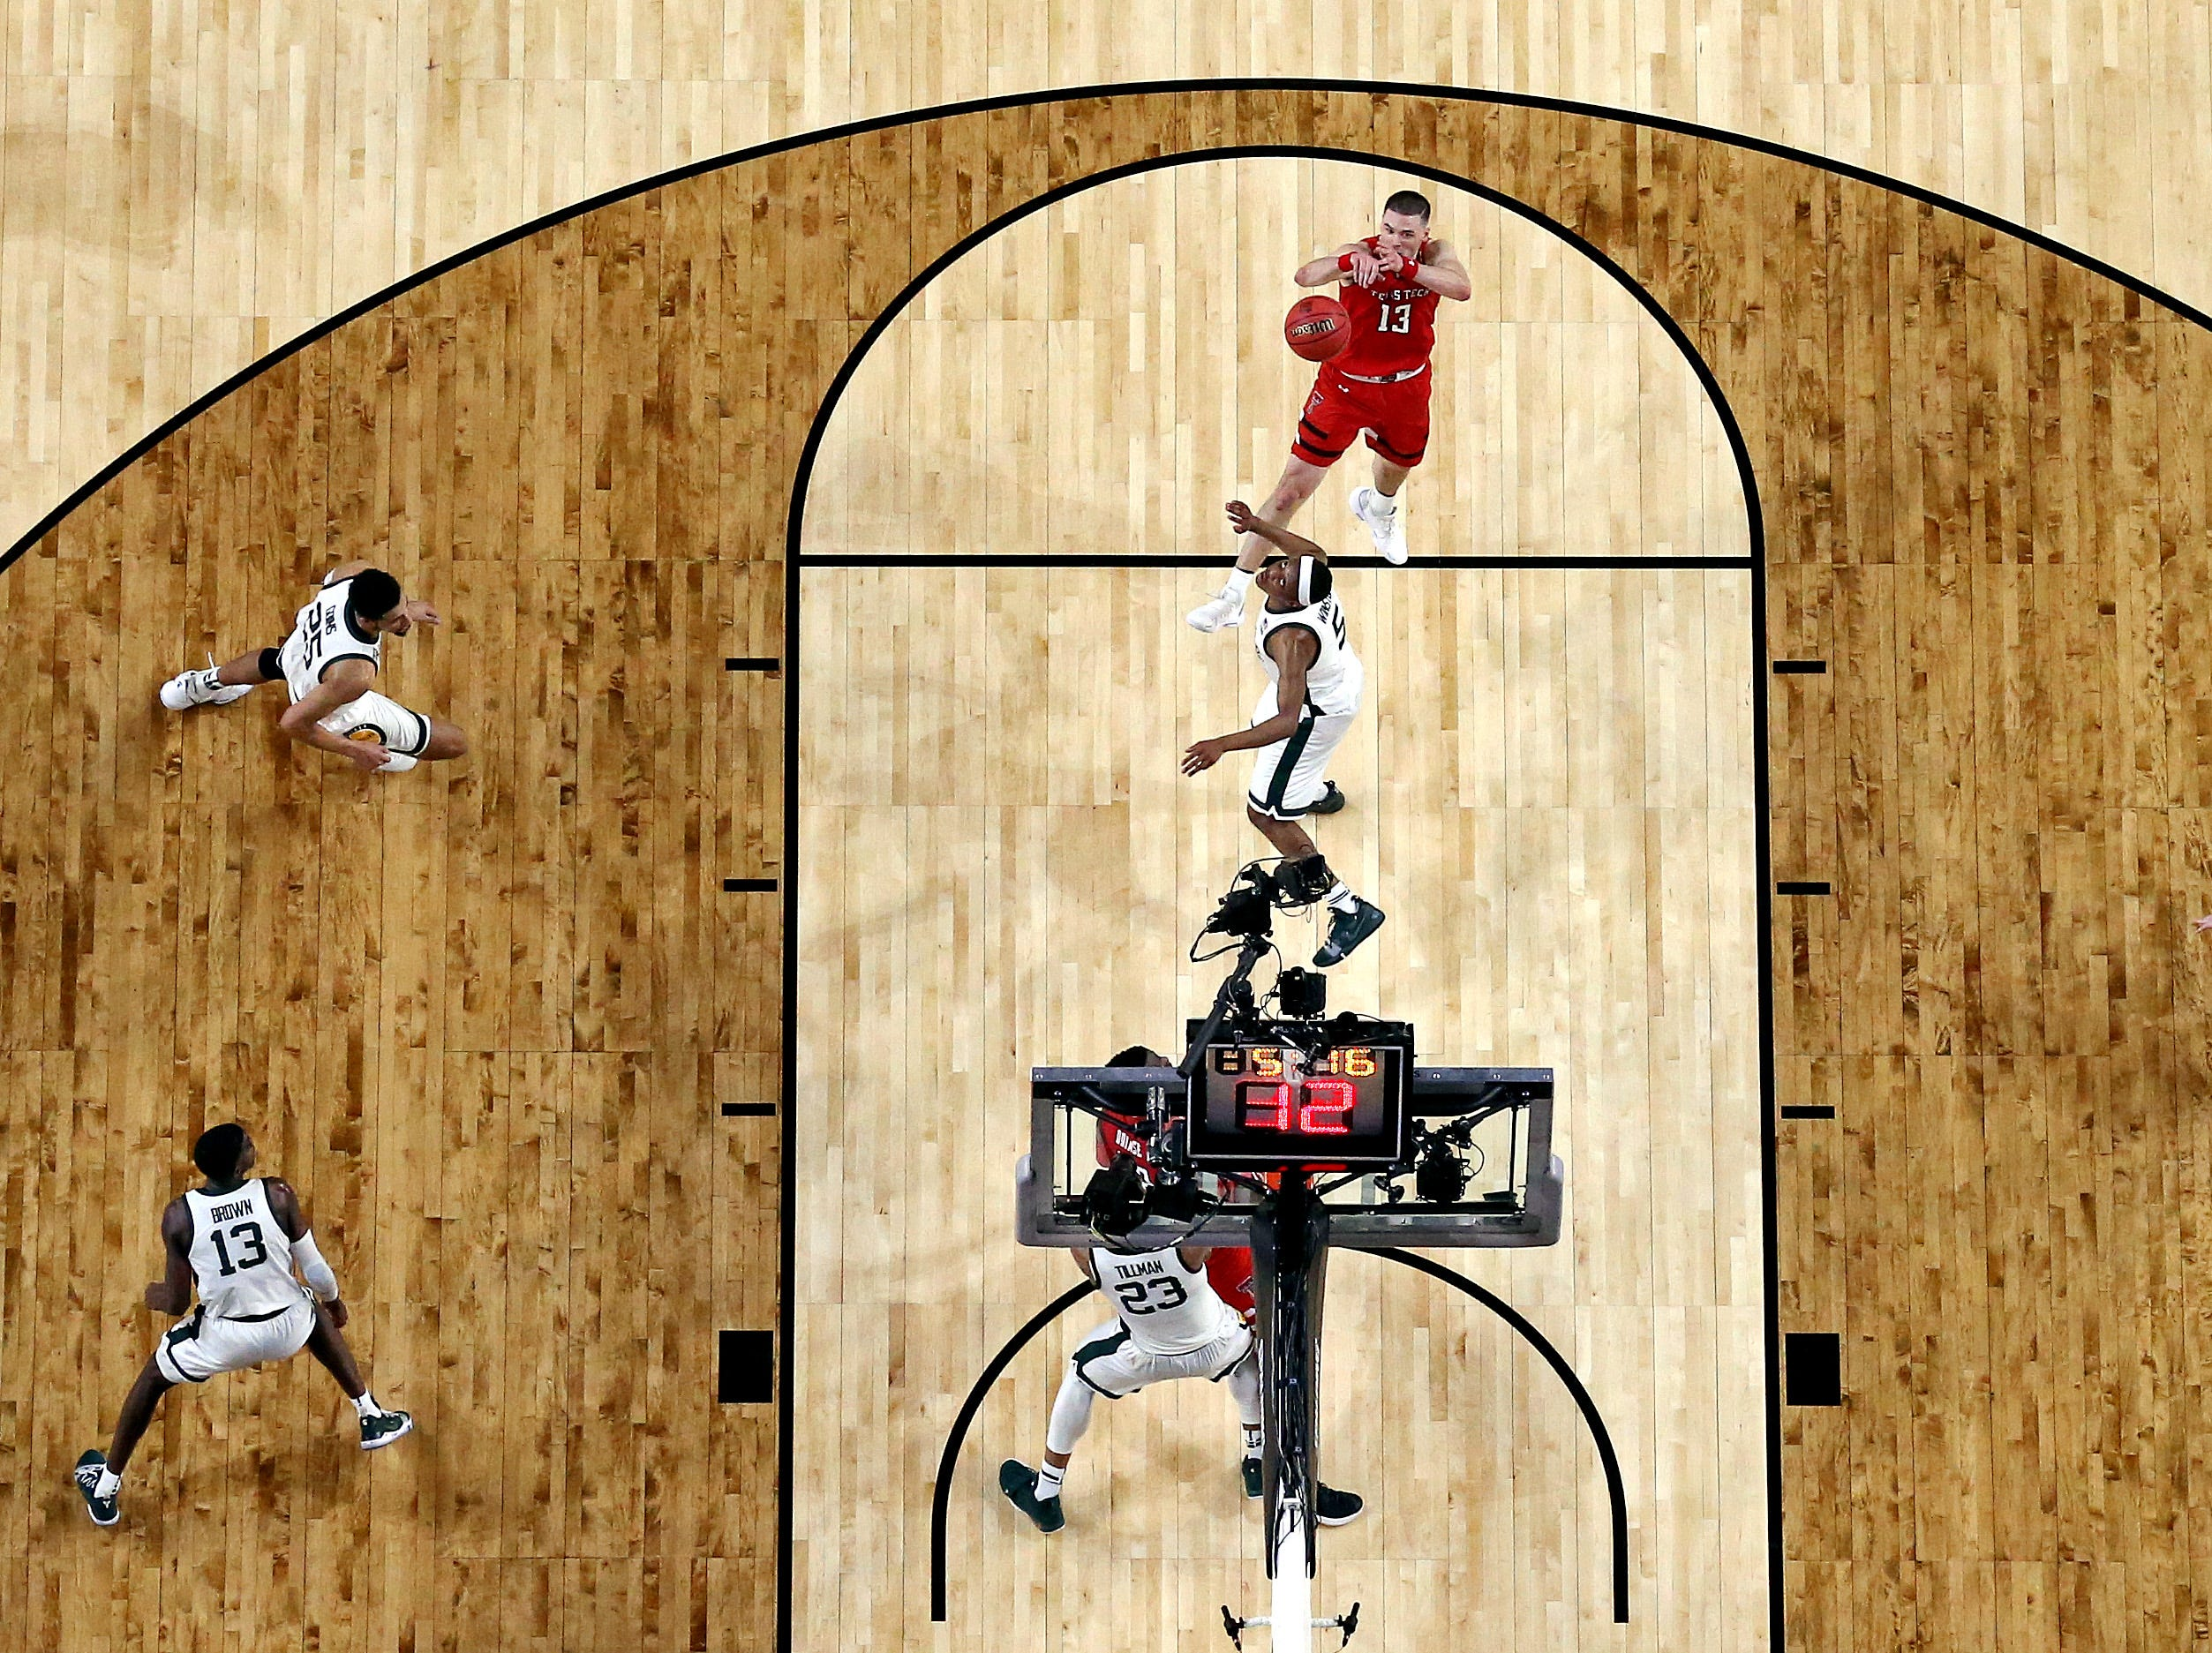 Apr 6, 2019; Minneapolis, MN, USA; Texas Tech Red Raiders guard Matt Mooney (13) shoots the ball against Michigan State Spartans guard Cassius Winston (5) during the first half in the semifinals of the 2019 men's Final Four at US Bank Stadium. Mandatory Credit: Bob Donnan-USA TODAY Sports